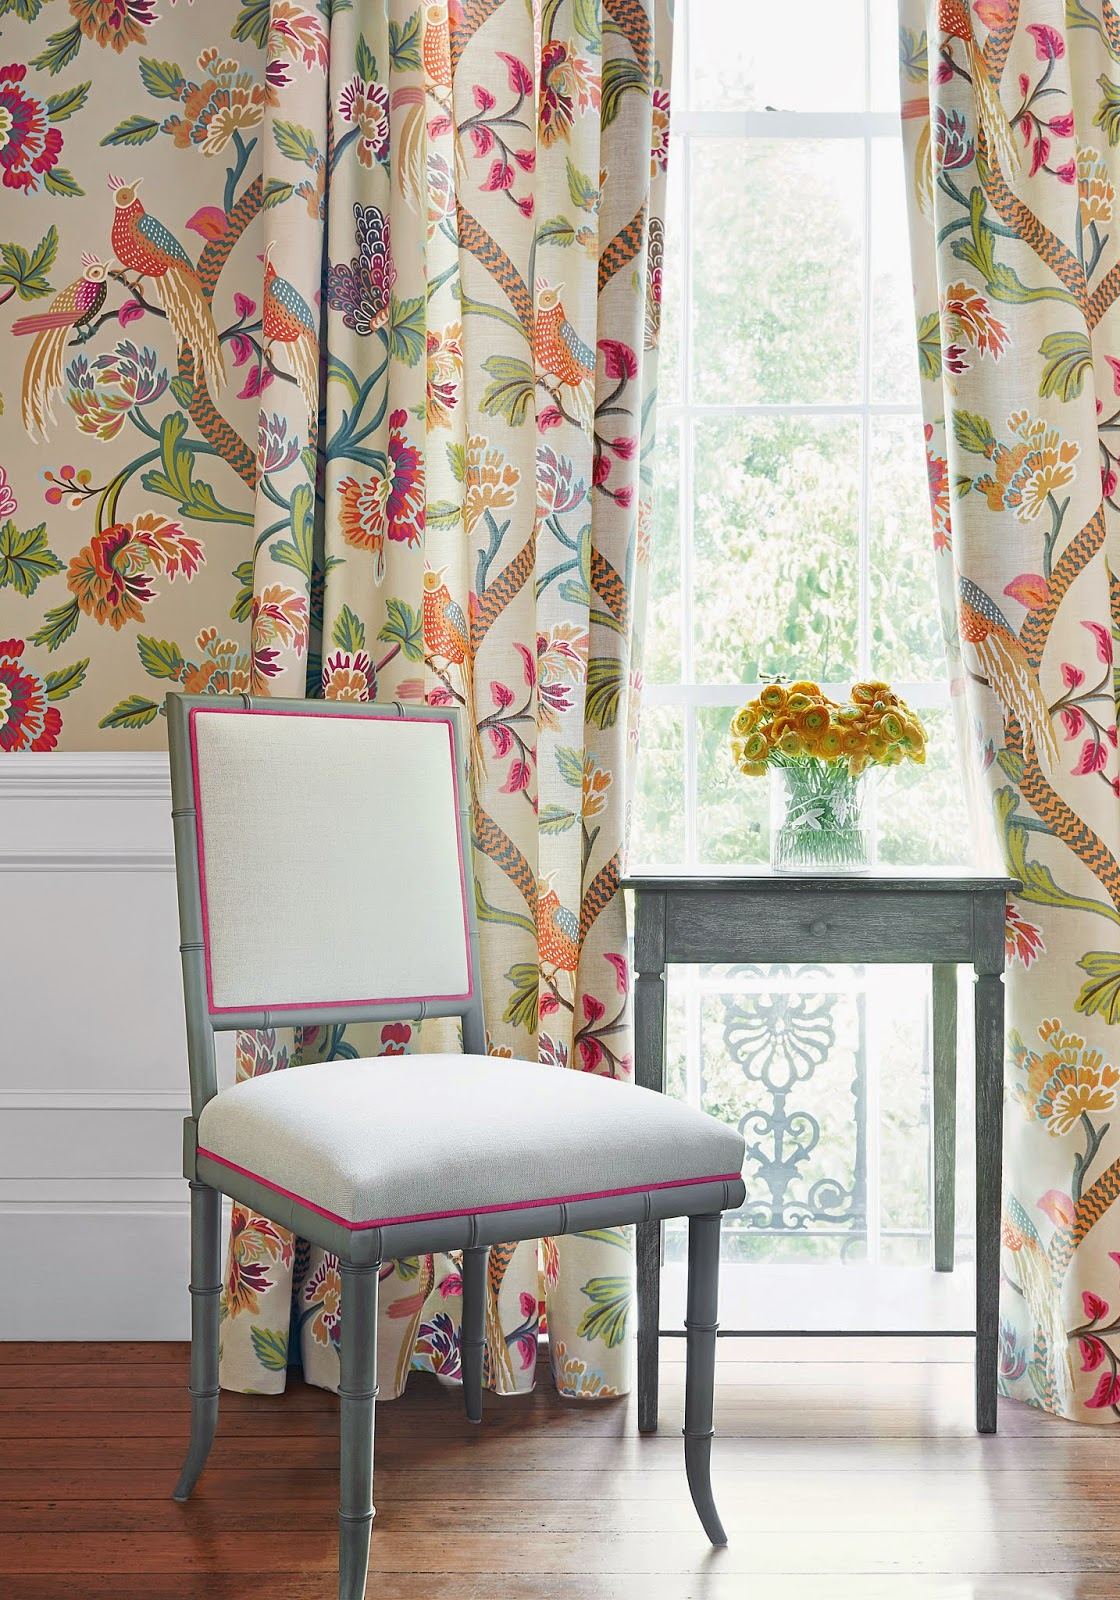 http://thibautdesign.com/catalog/product/details/product/janta_bazaar_t64159/material/wallpaper/colorway/flax_704/